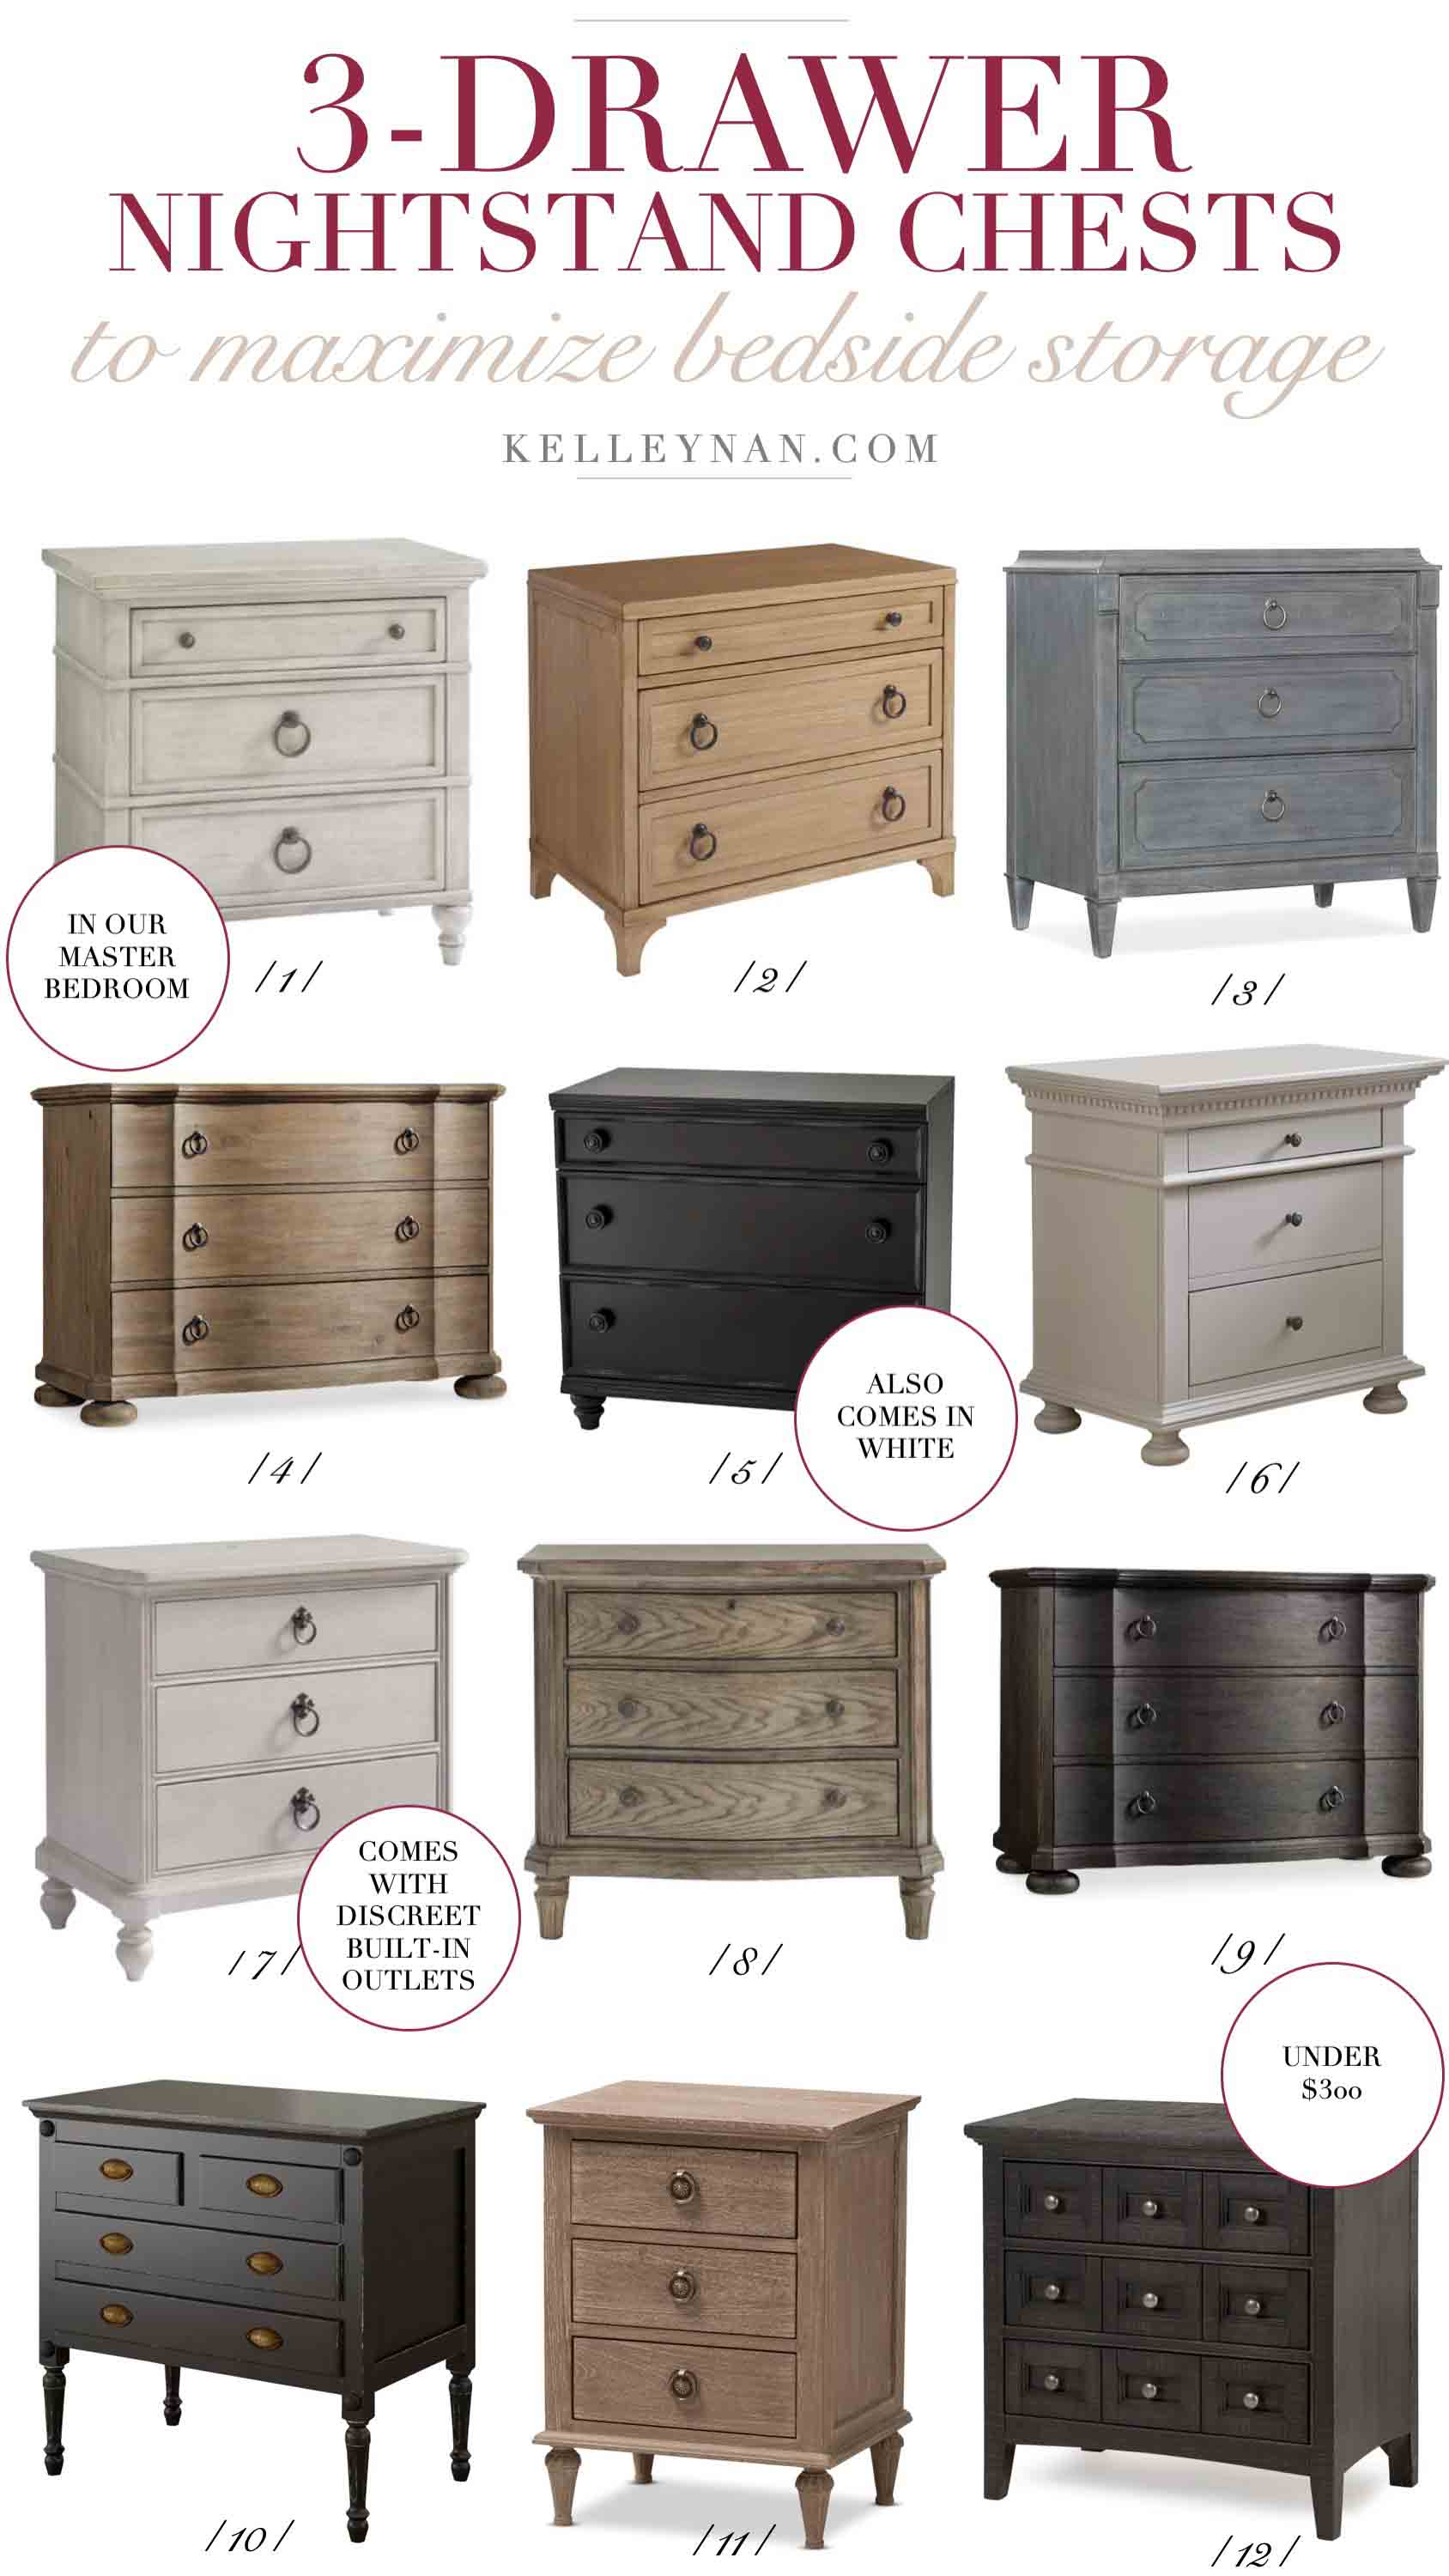 Favorite bachelor's chest three drawer nightstands to maximize bedroom storage